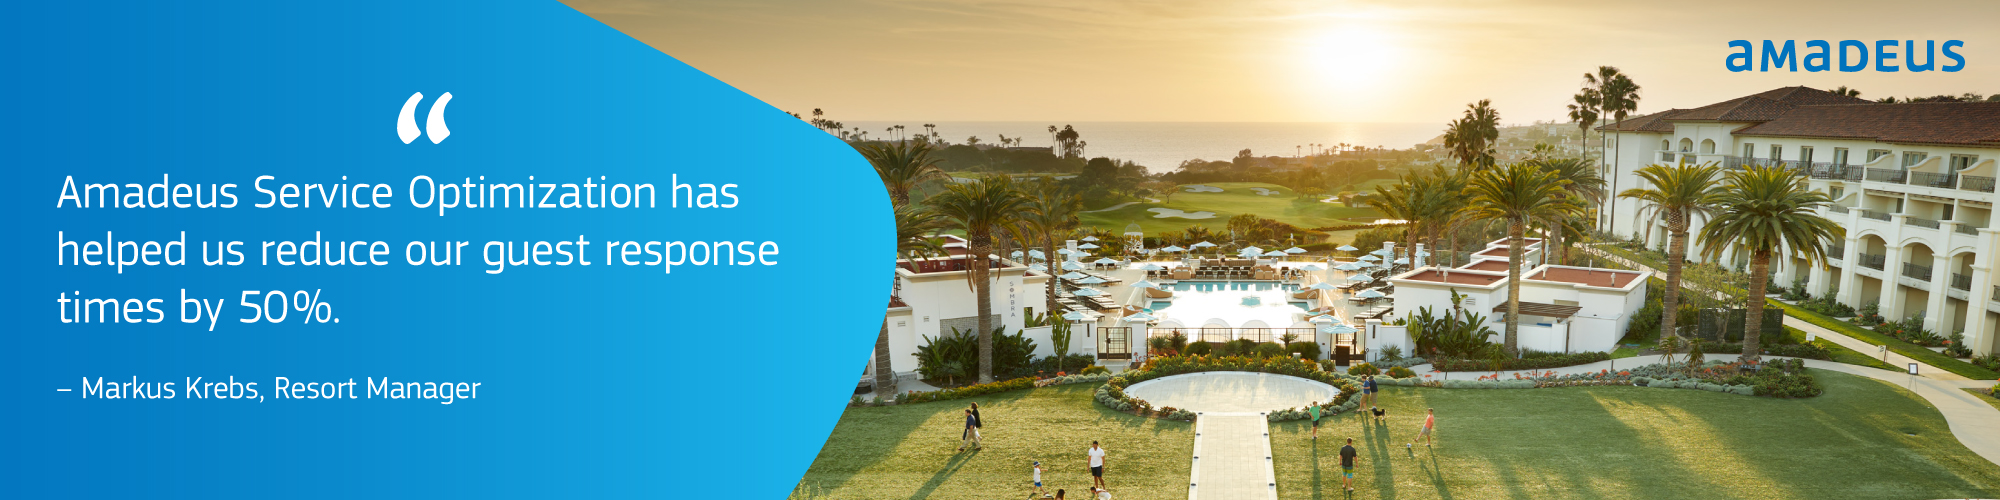 Monarch Beach Case Study